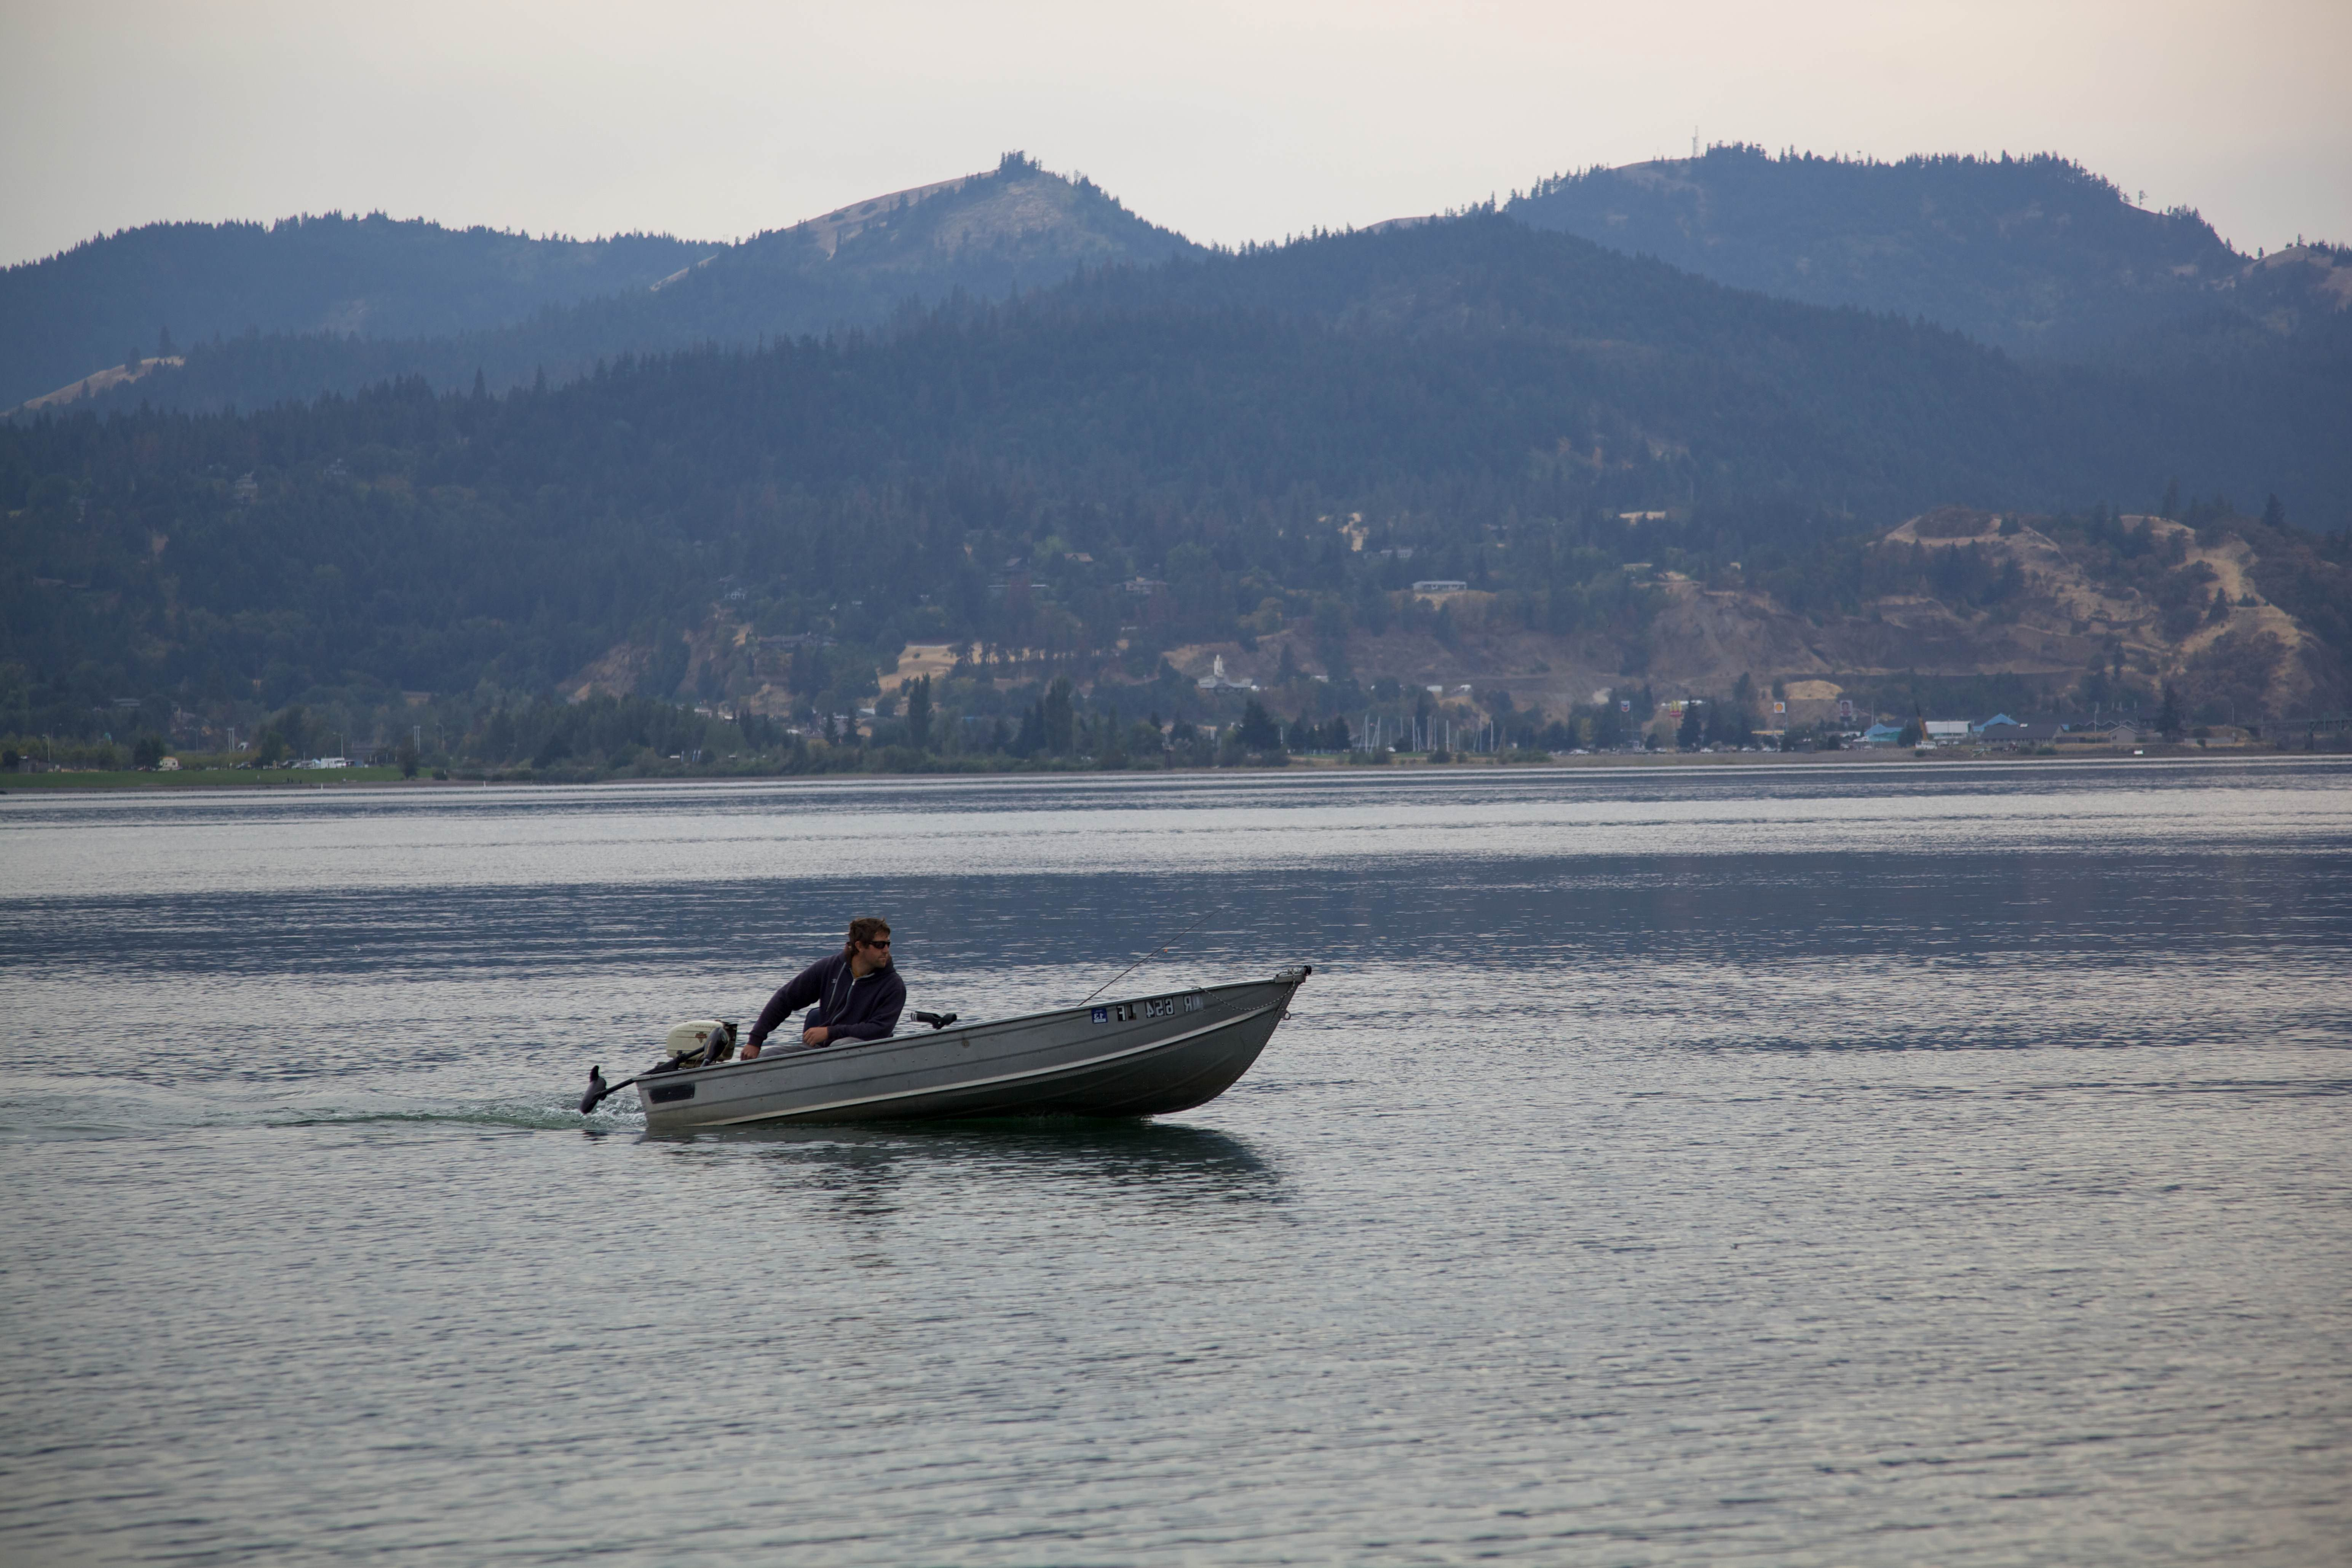 Free photograph; recreational, boating